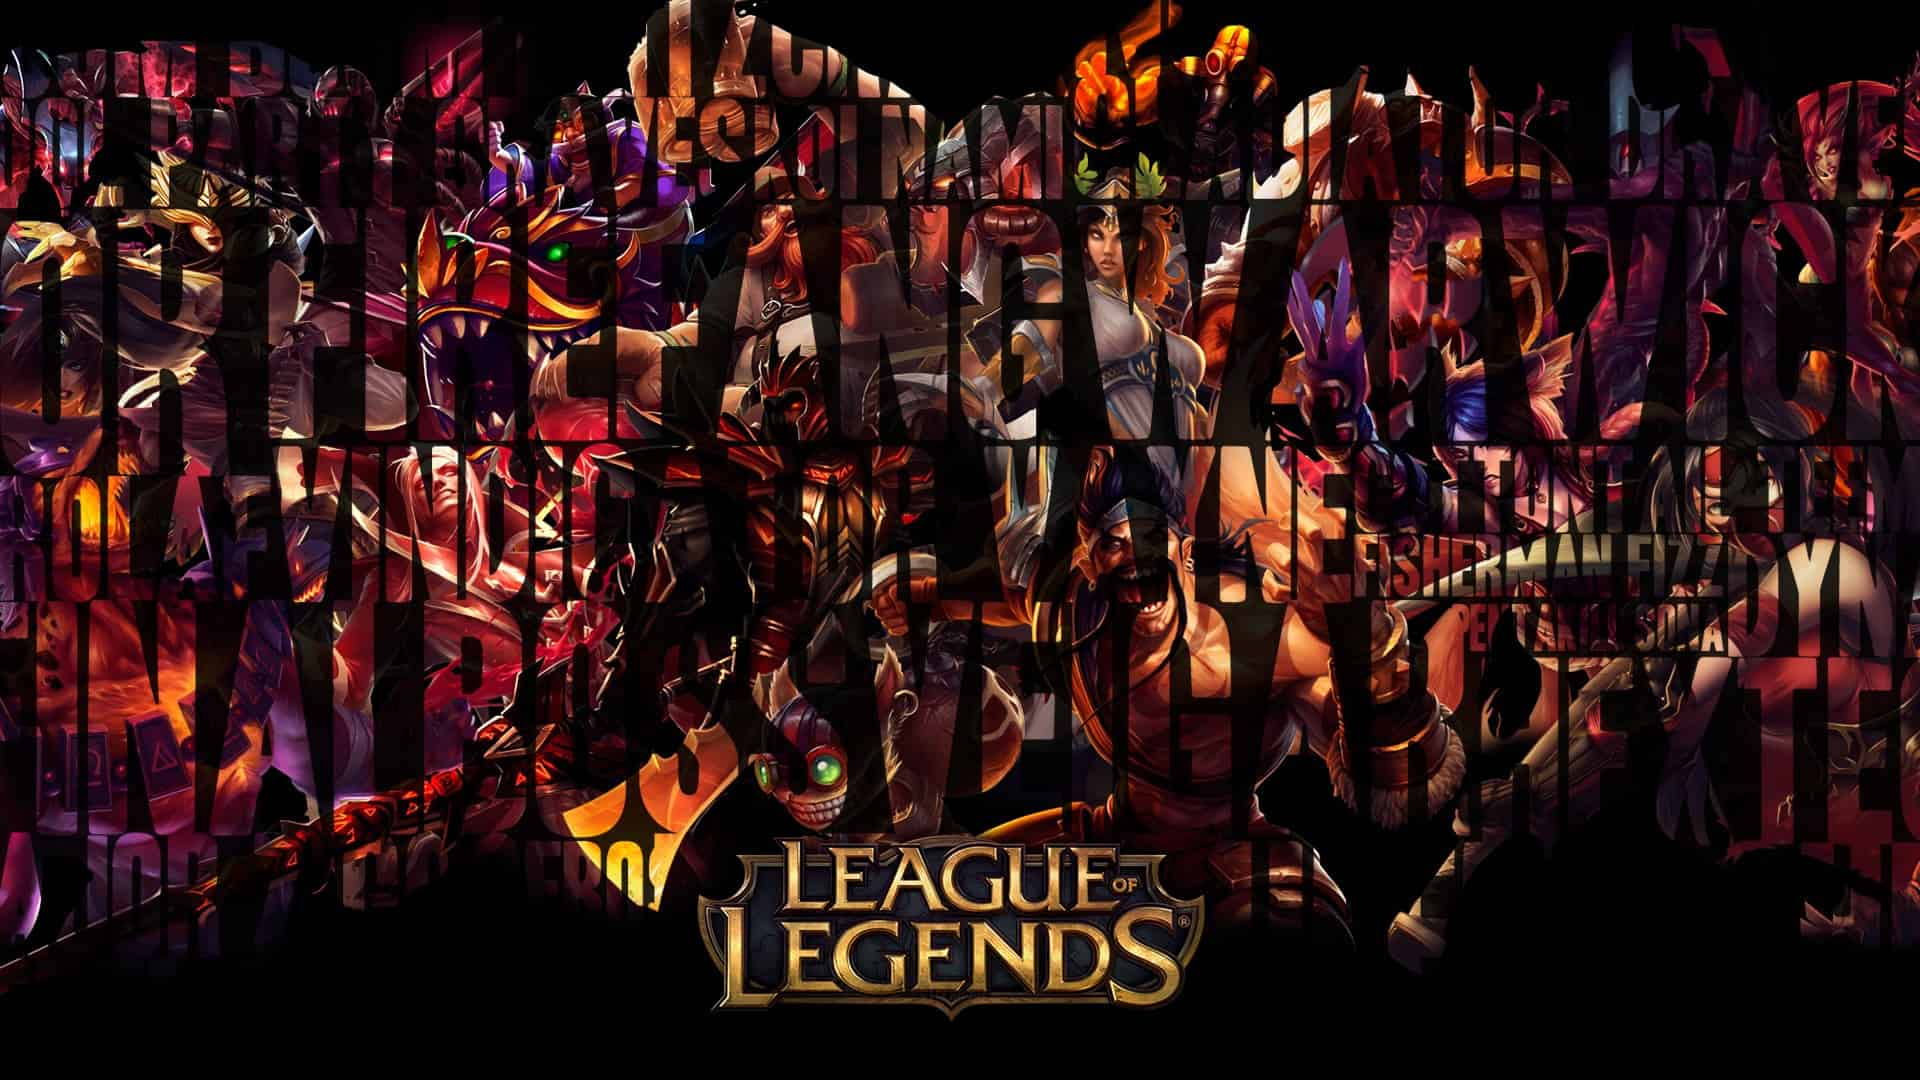 League of Legends Elo rating system